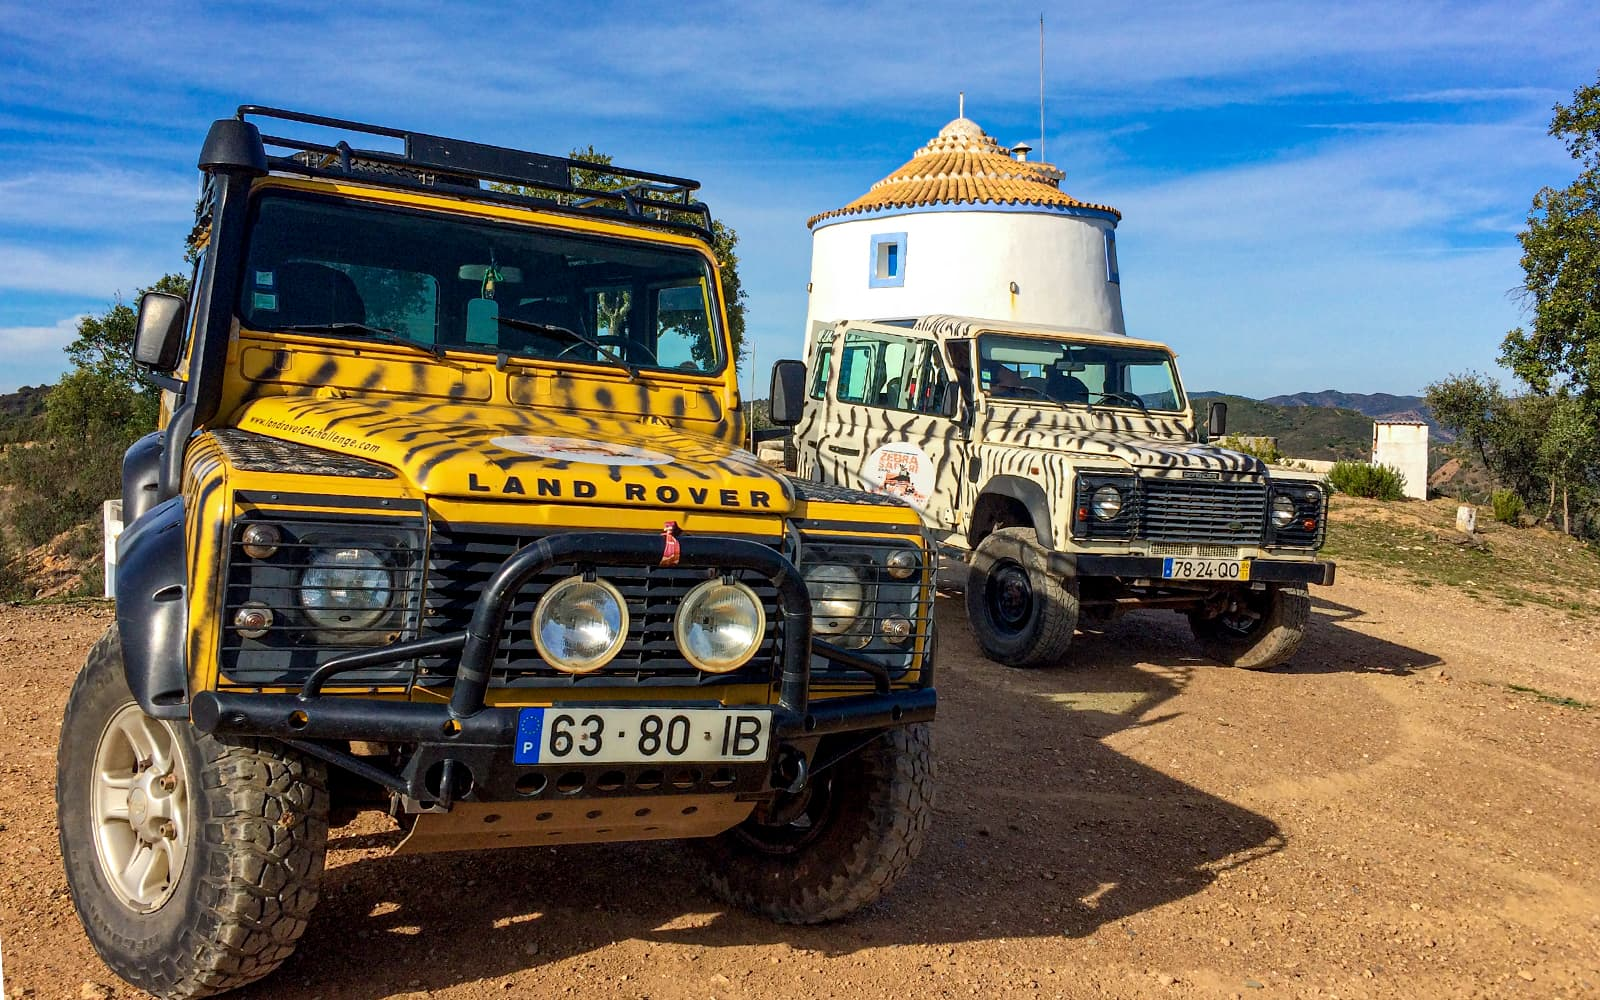 Jeep Safari Tour – Full Day